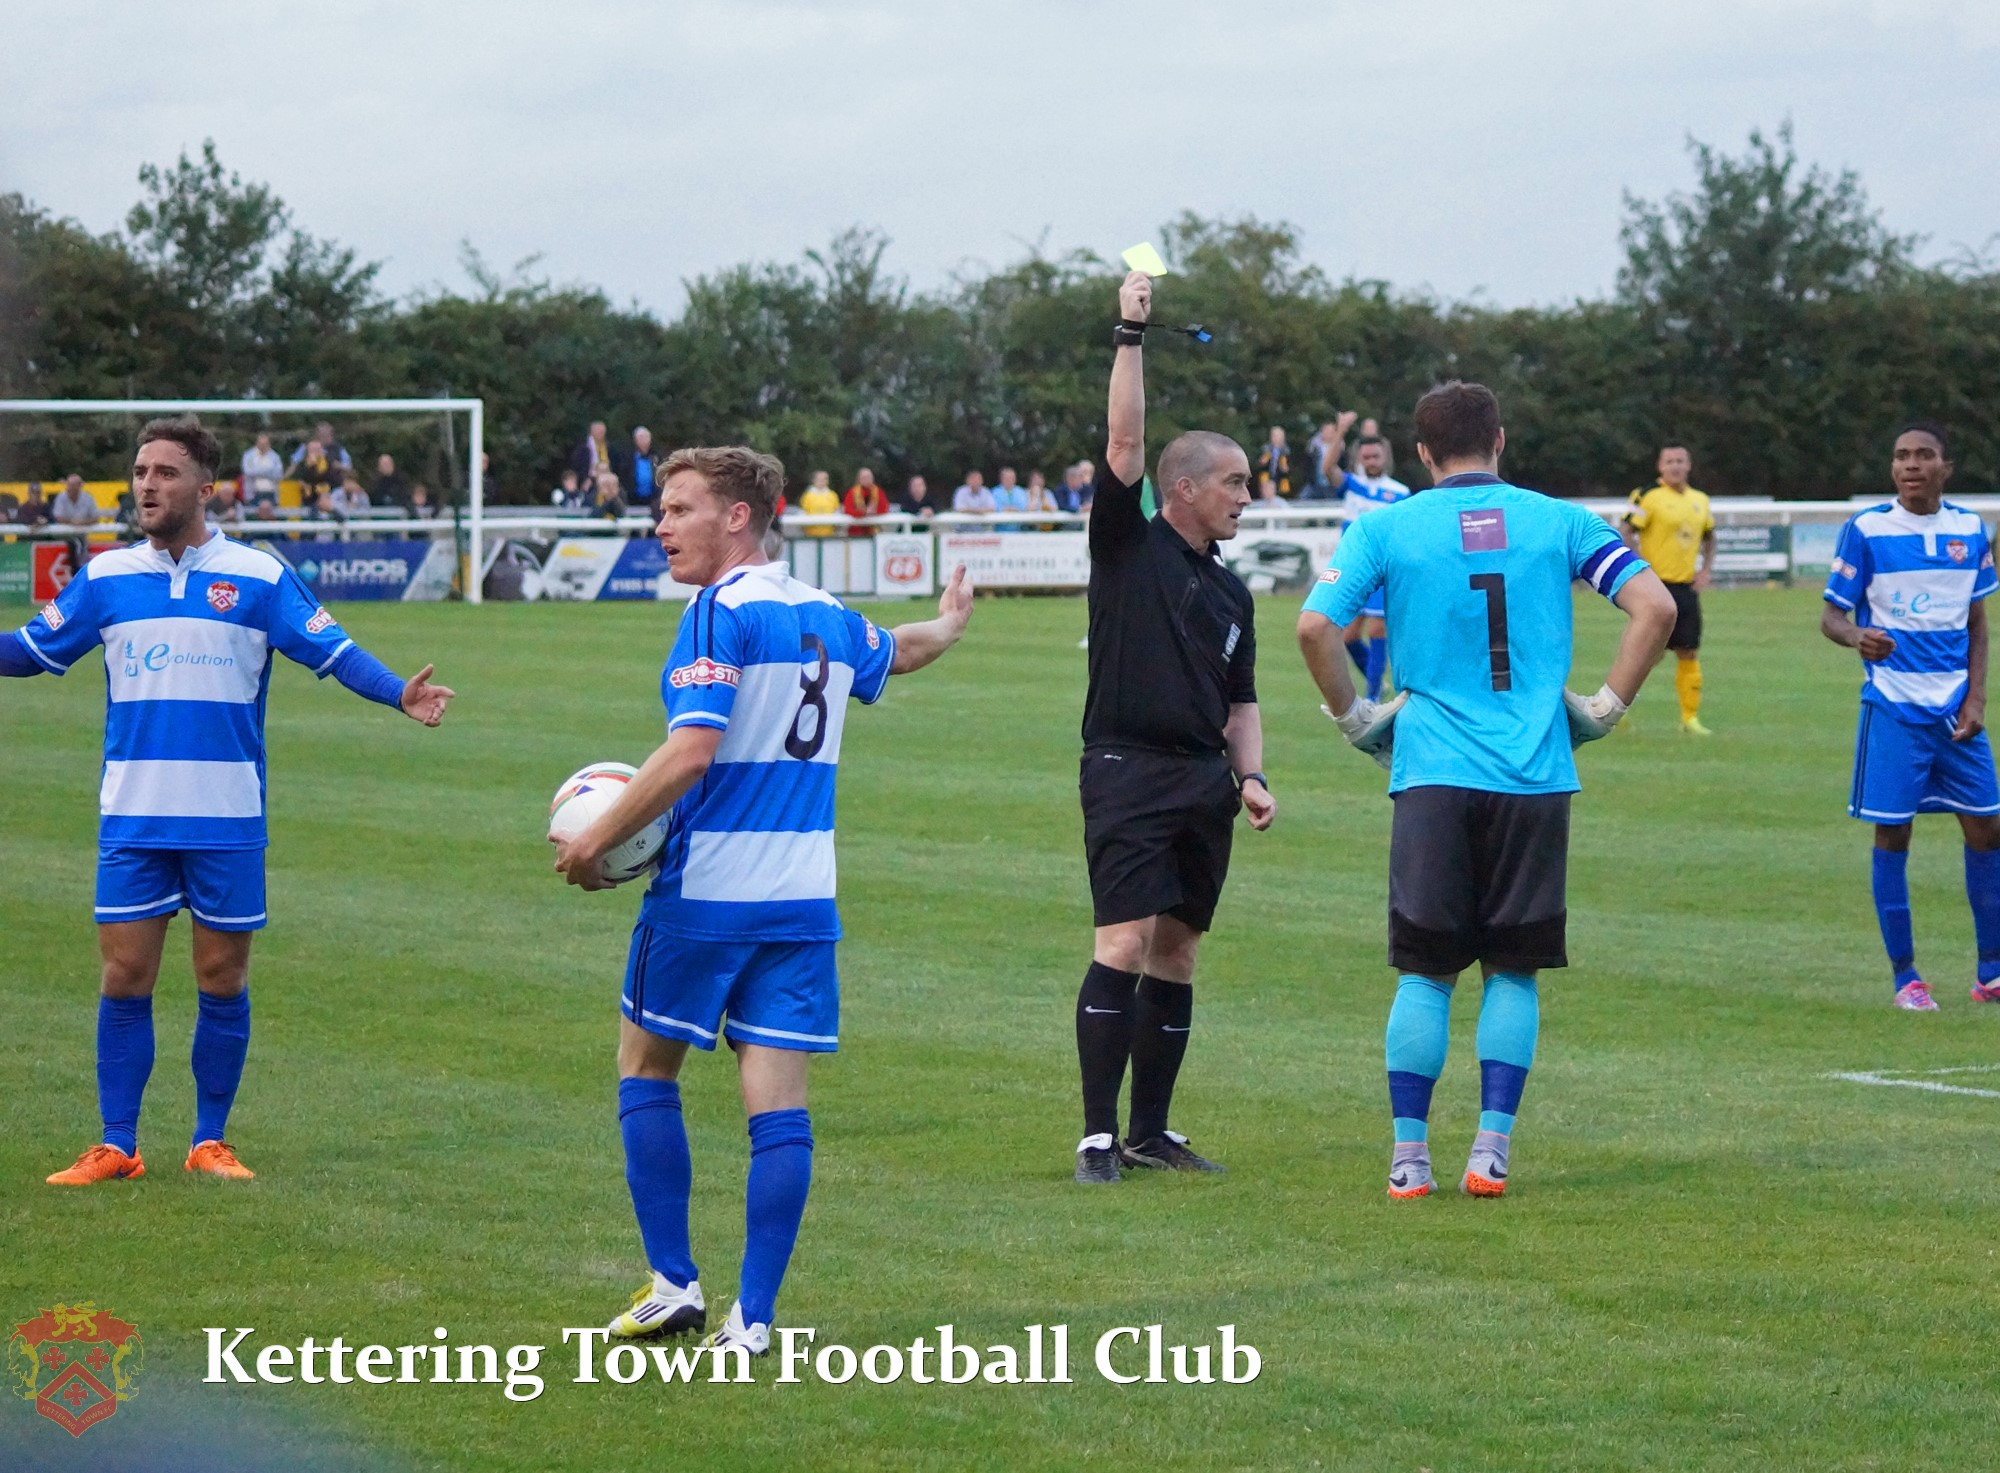 Kettering town fc match photos with celebrity